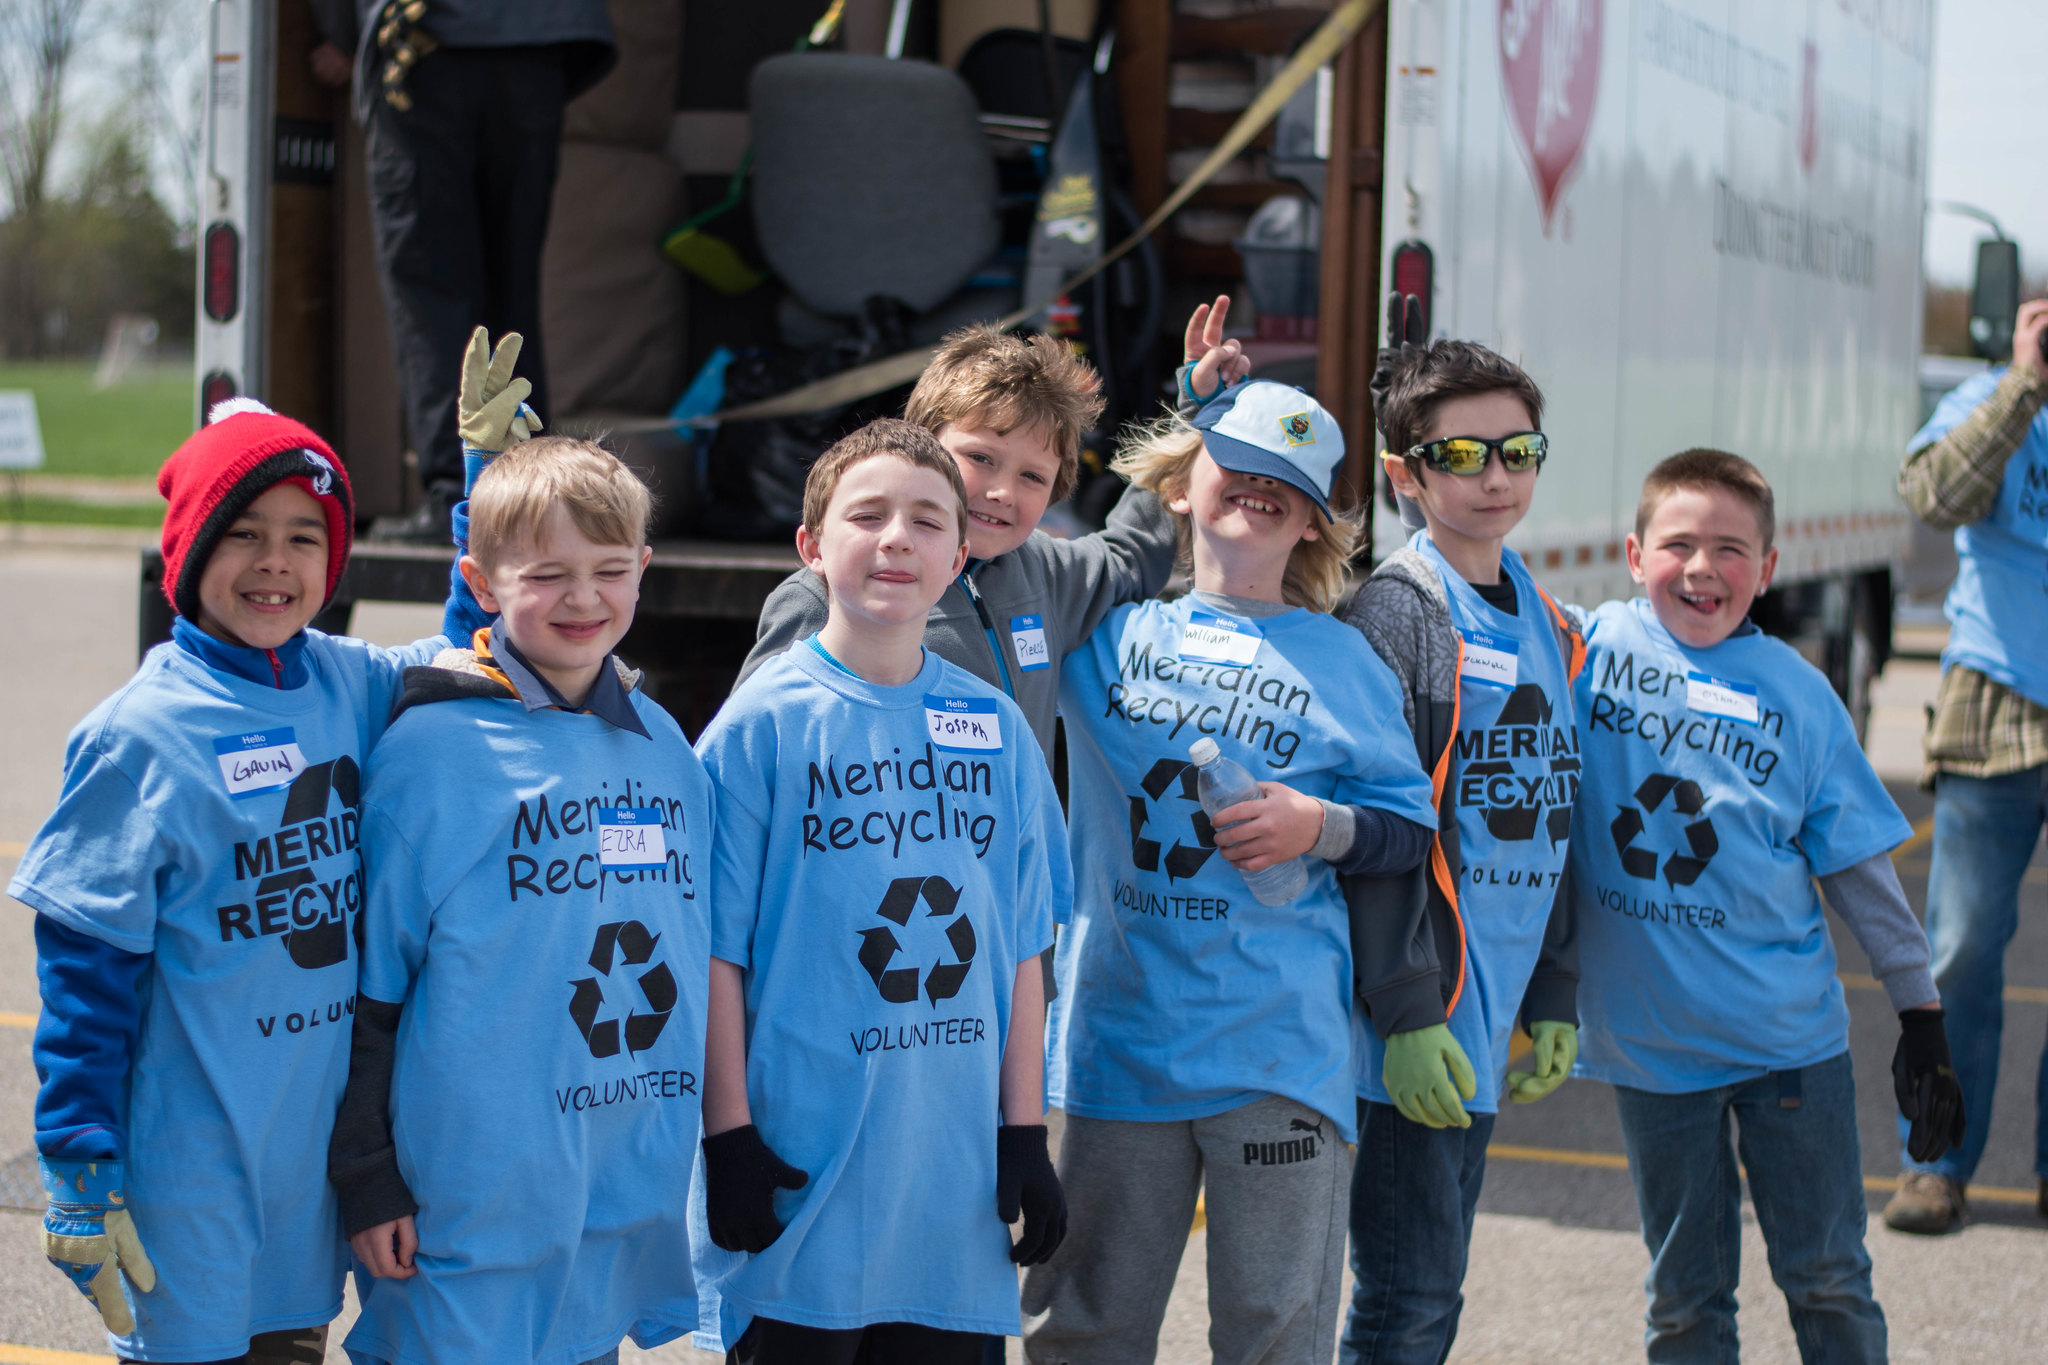 Meridian Township's Earth Day Recycling Event Helps Break World Record